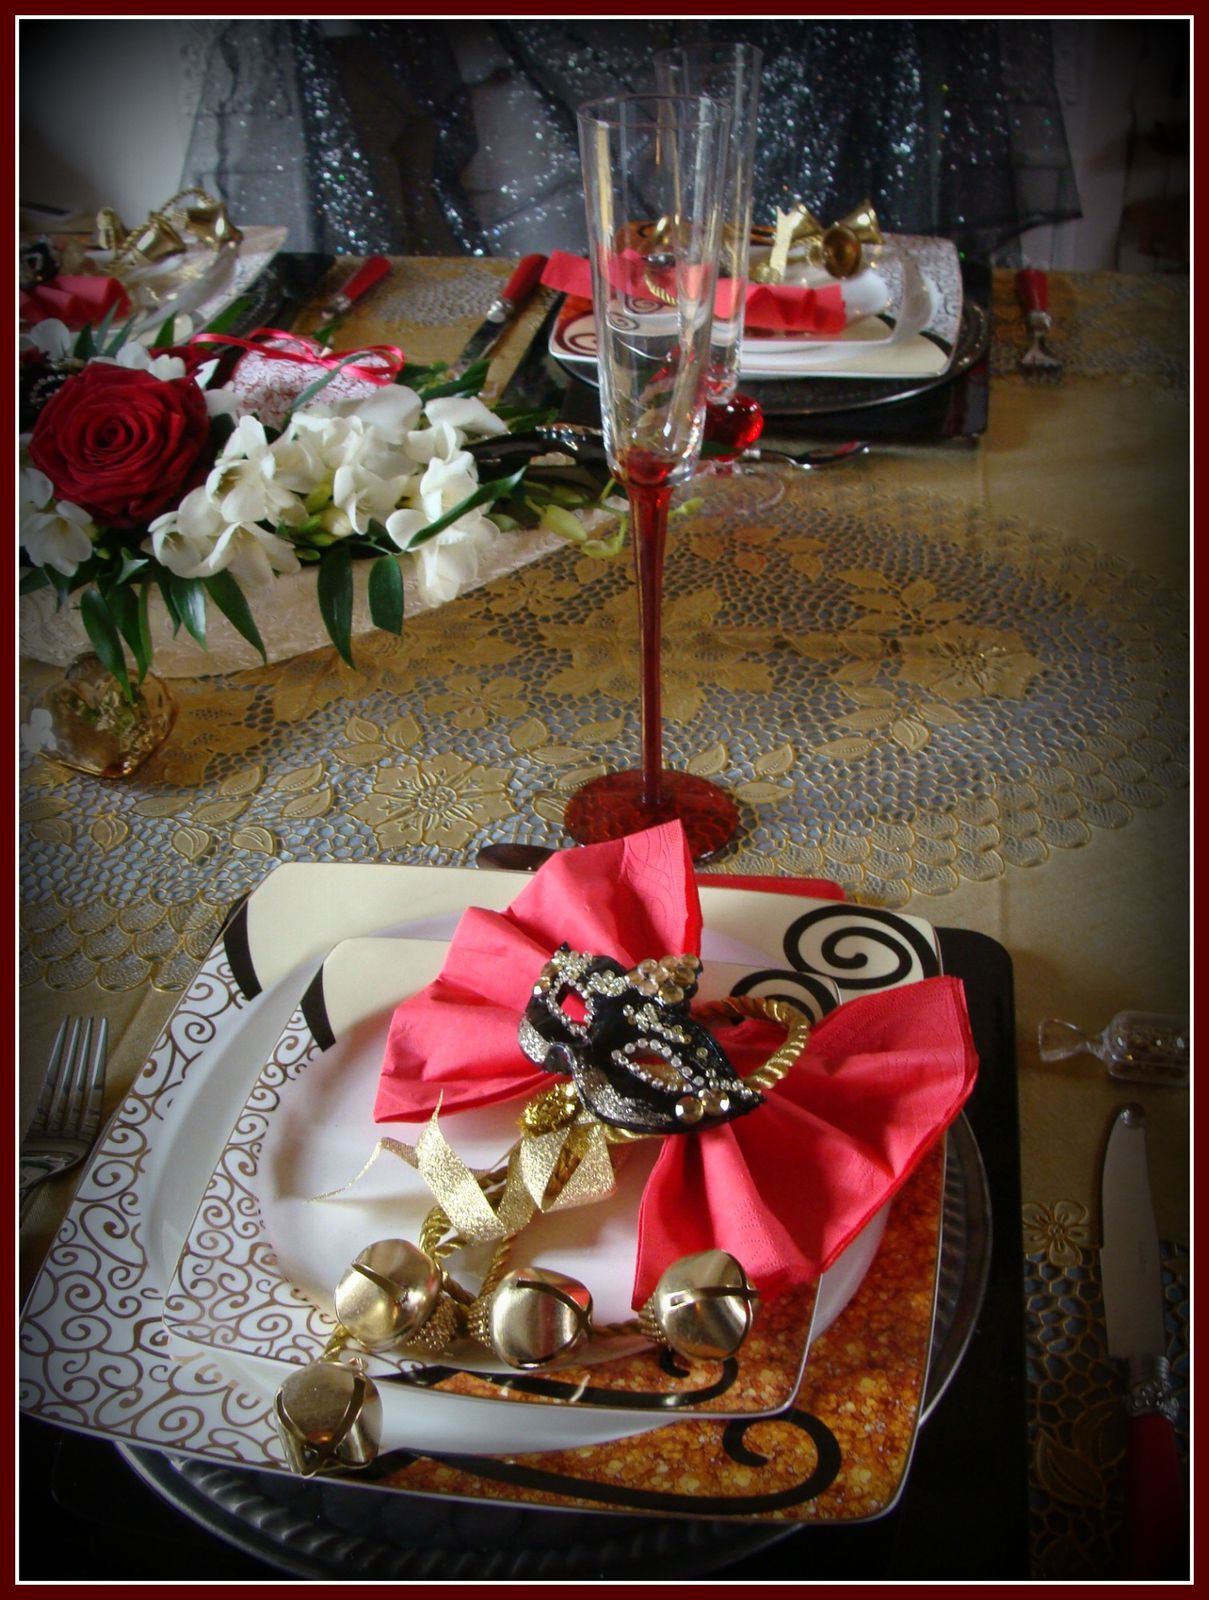 Table Saint Valentin en ce qui concerne table saint-valentin a venise - le blog de escargotine